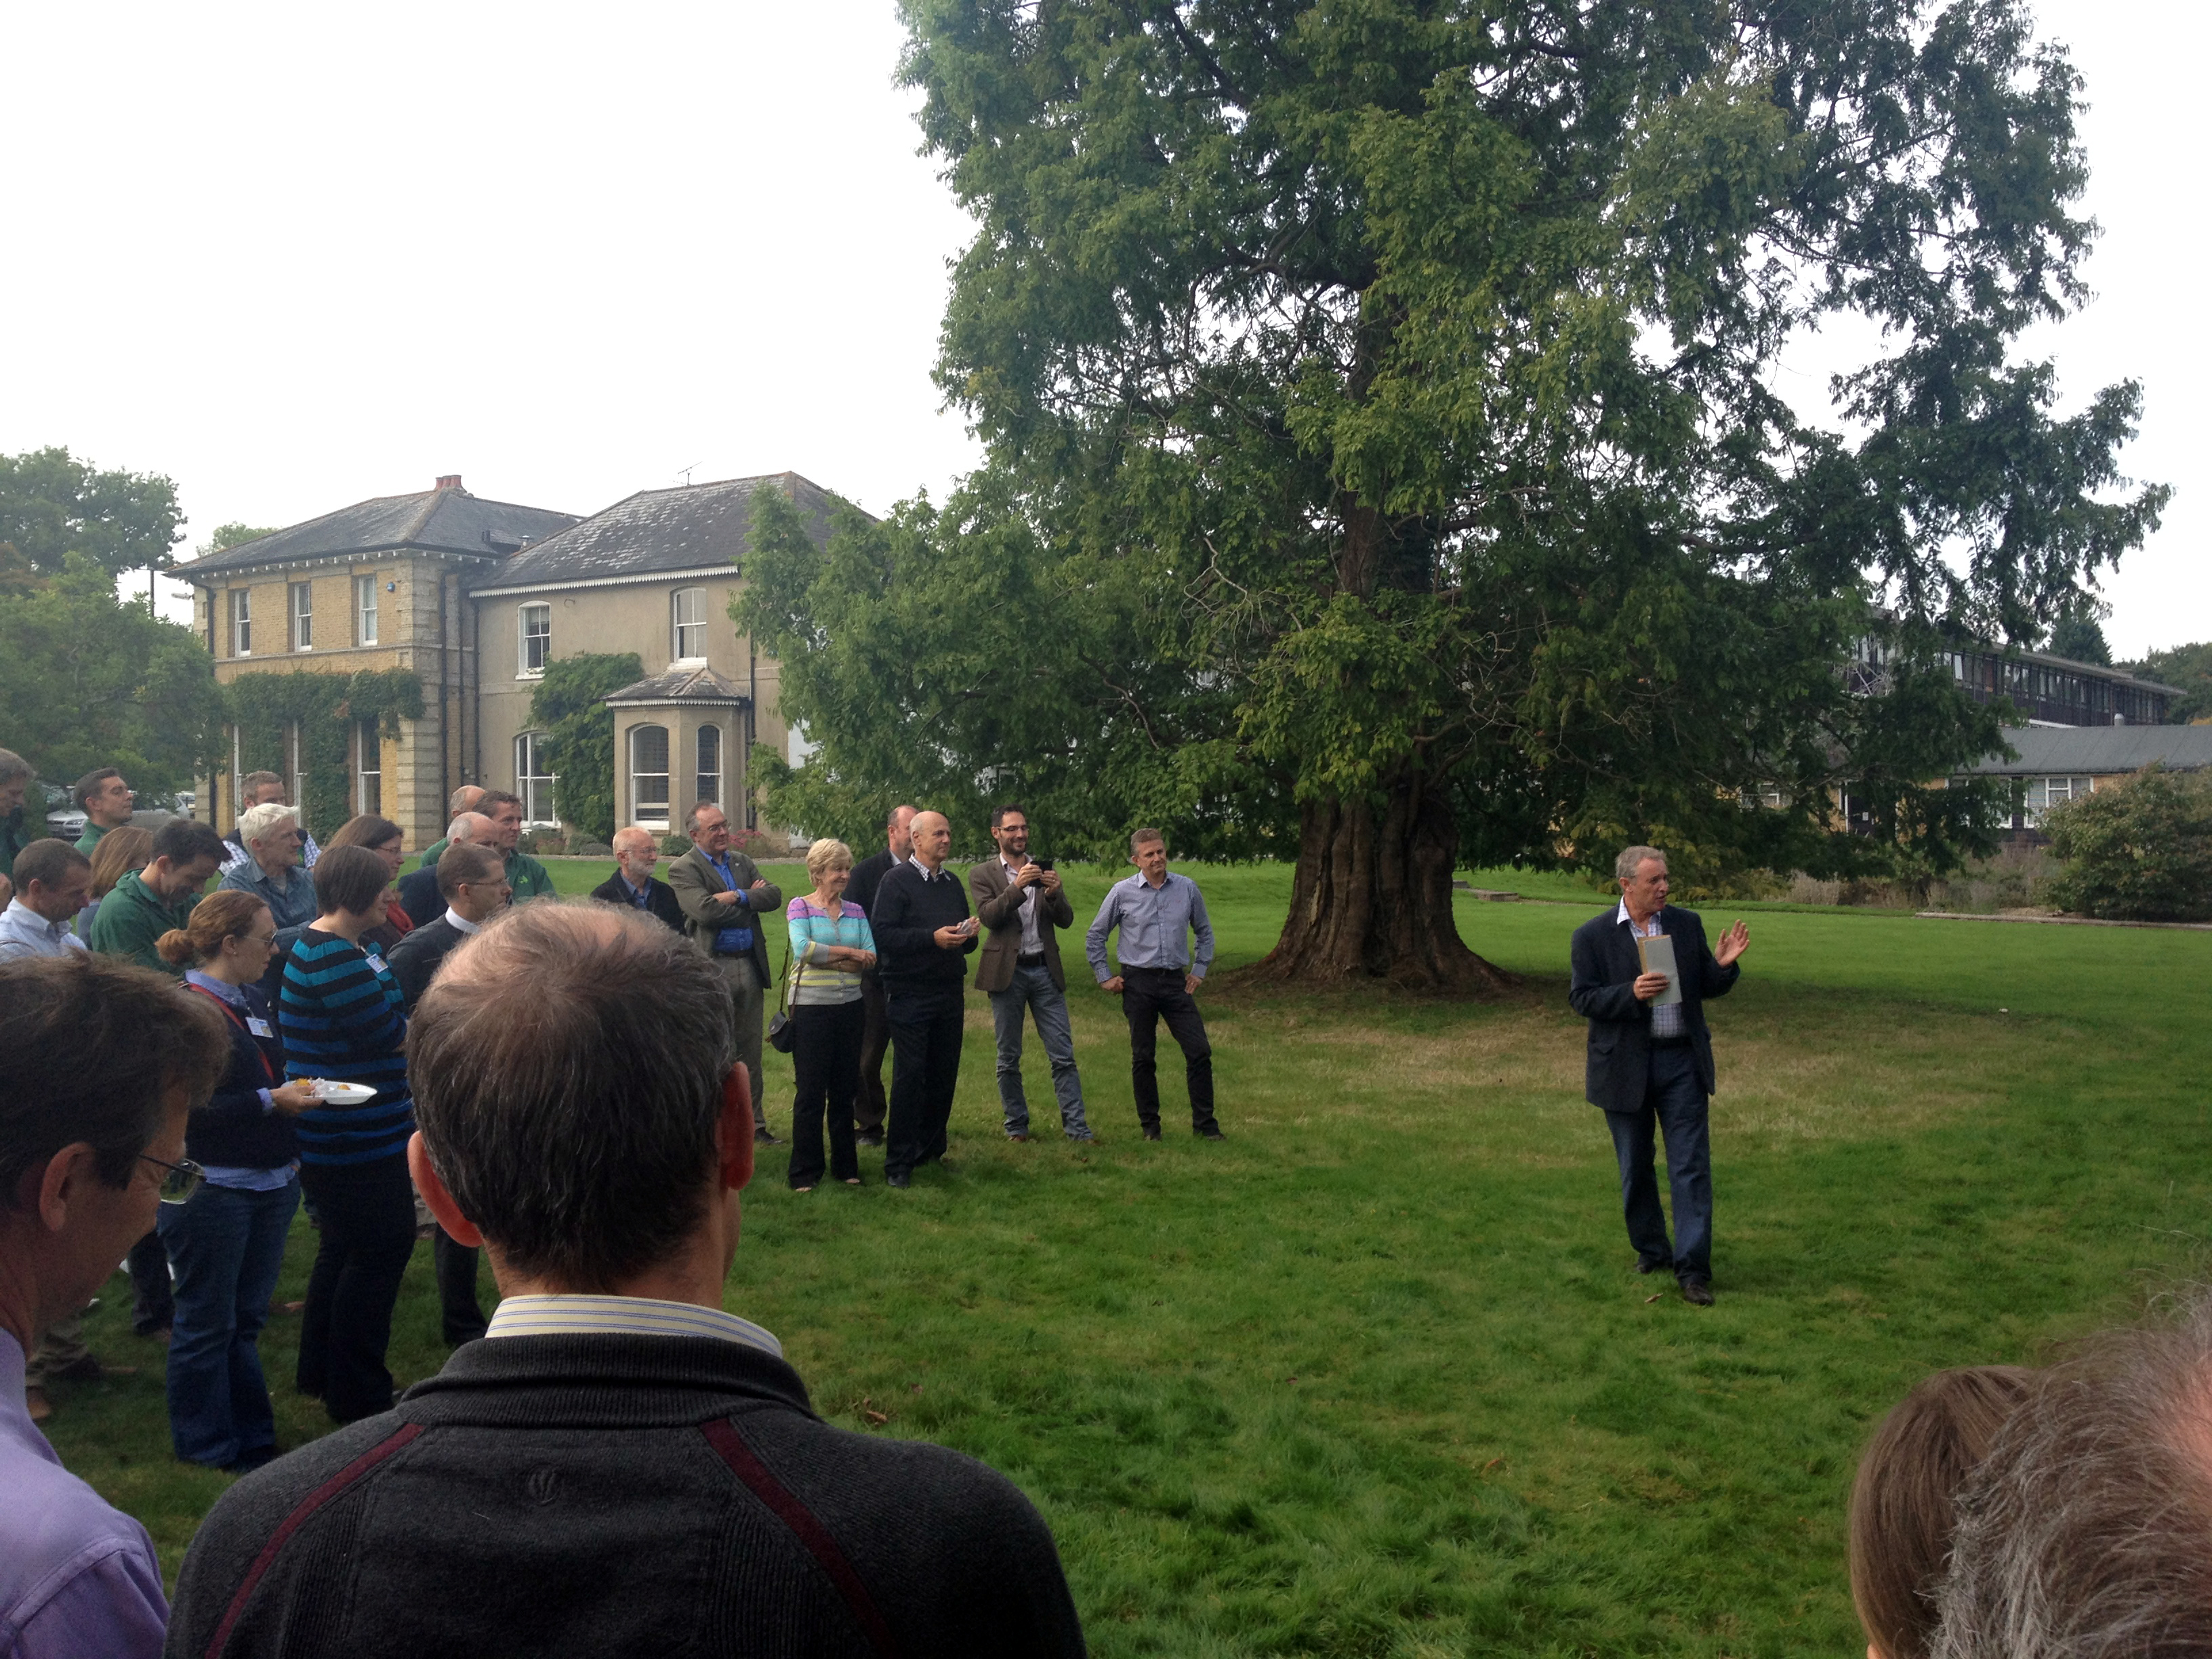 Alan Betts gives his farewell speech to Forestry Commission and Defra colleagues on the Forestry Commission's Alice Holt lawn